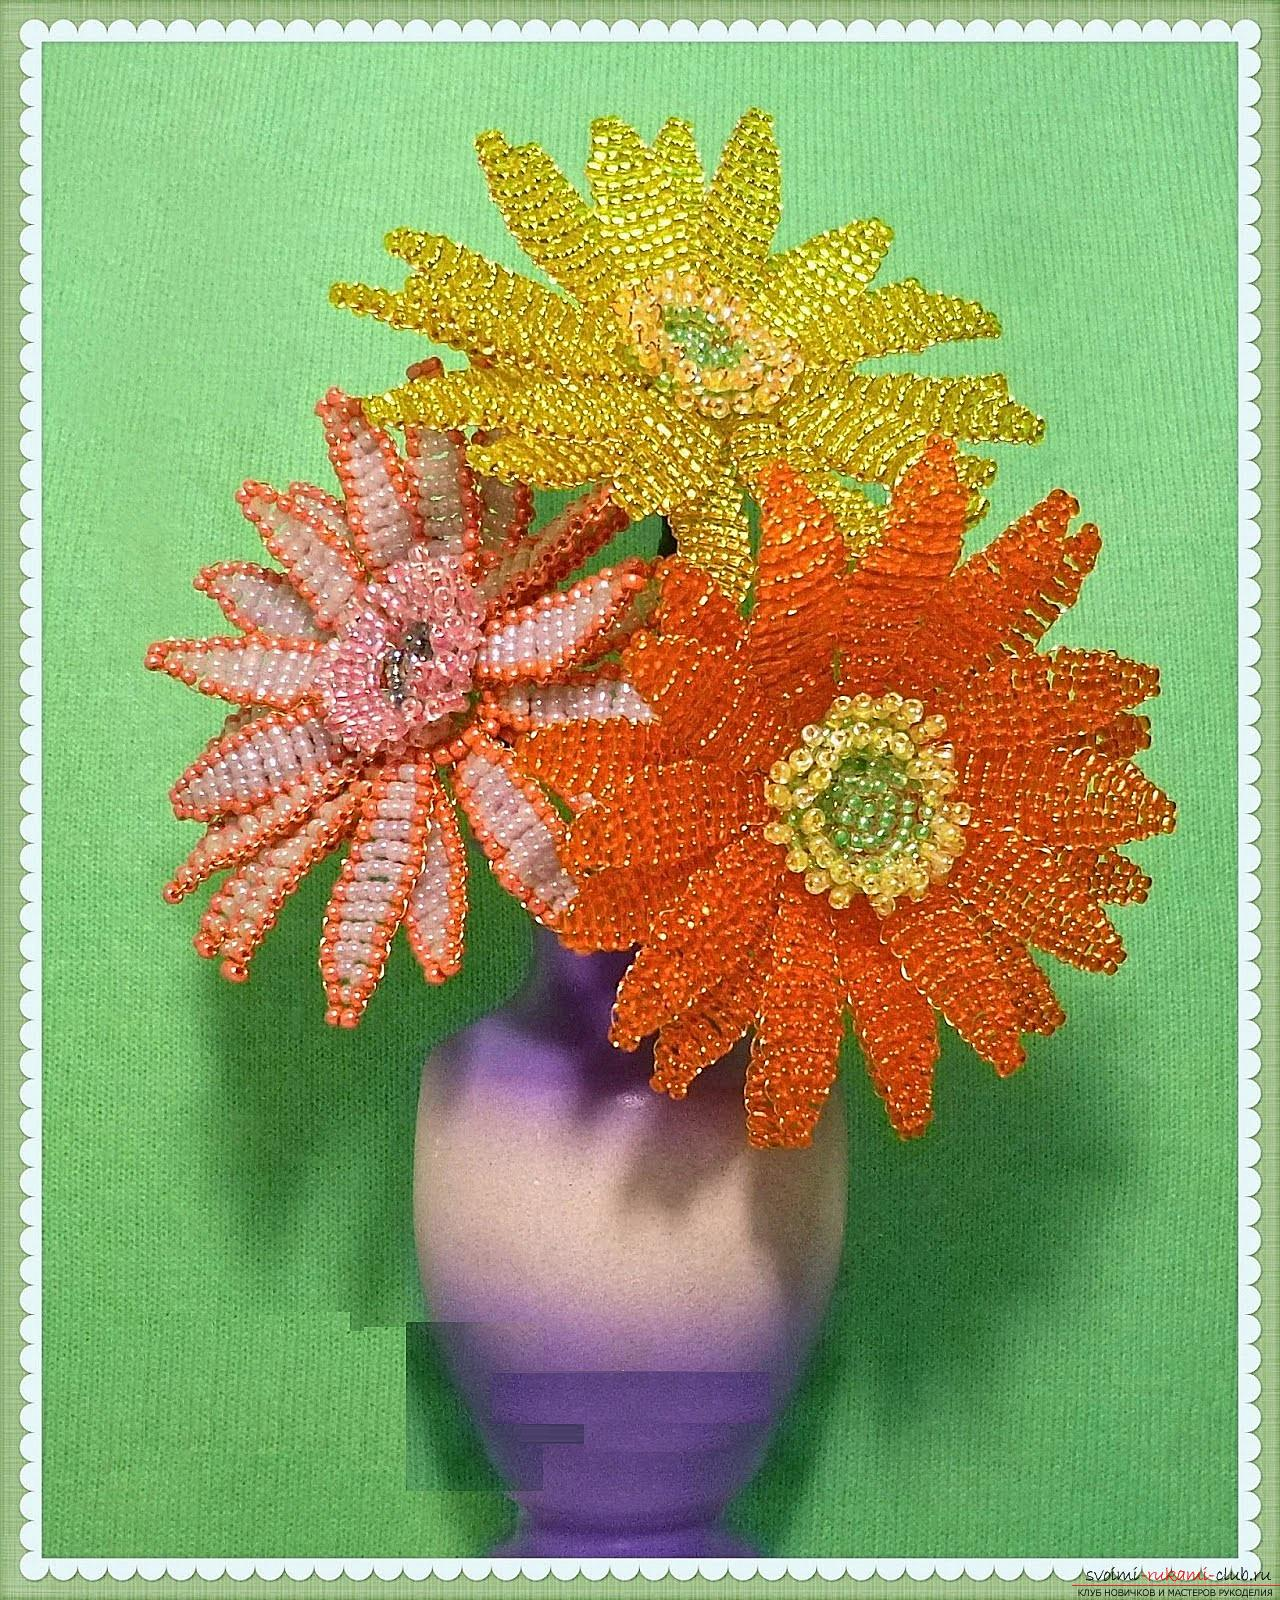 How to create a gerbera flower from beads in the technique of parallel weaving, step-by-step photos and description. Photo №1